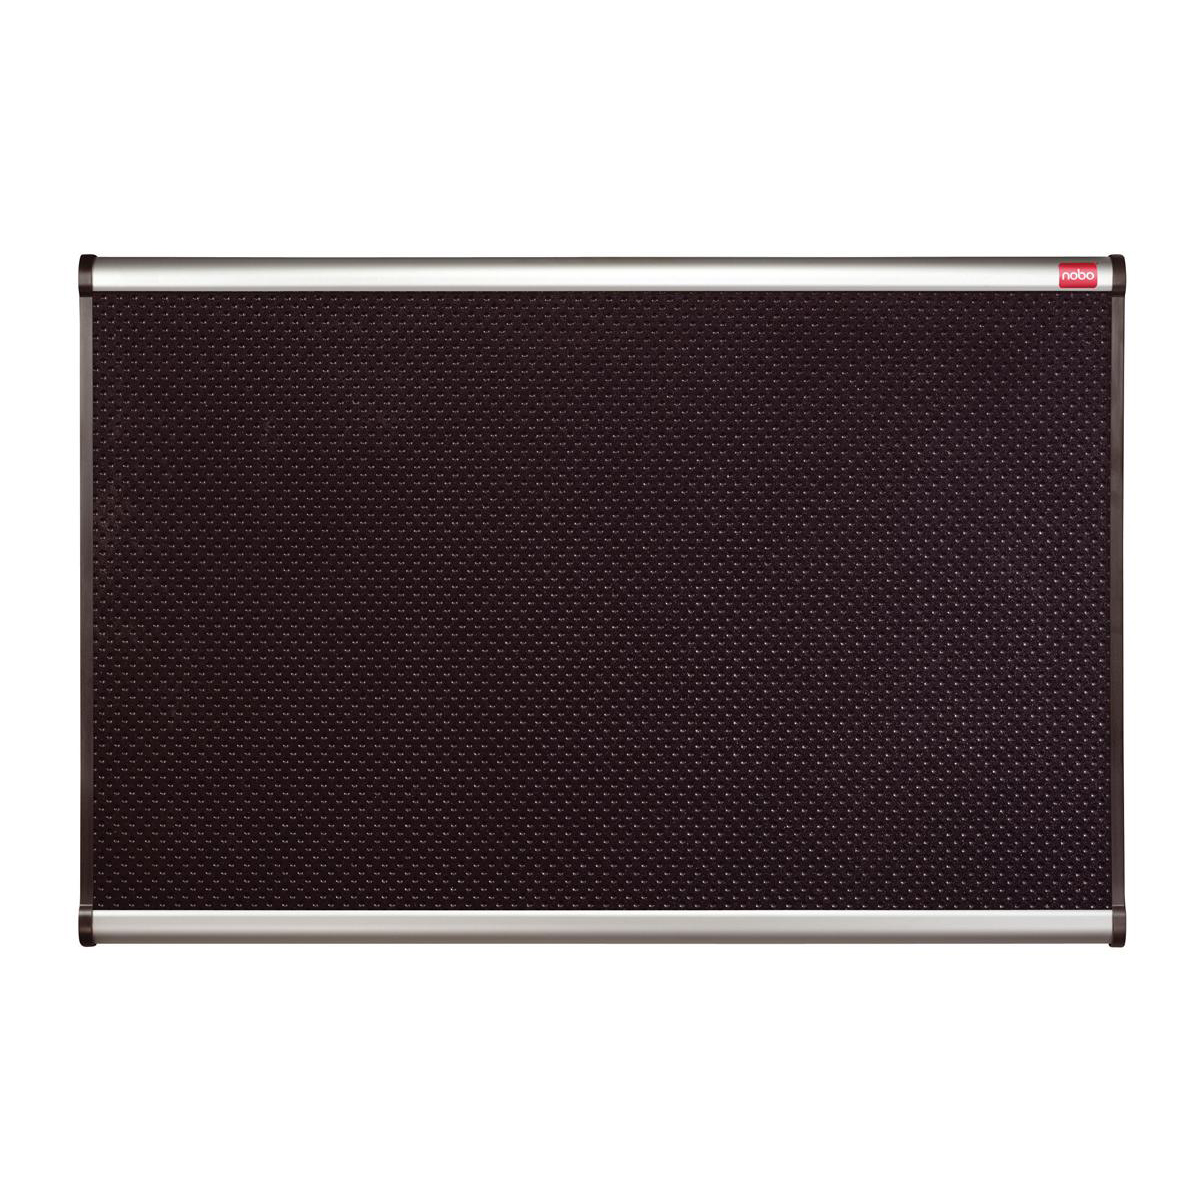 Foamboard Nobo Classic Noticeboard High-density Foam with Aluminium Finish W1200xH900mm Black Ref QBPF1290